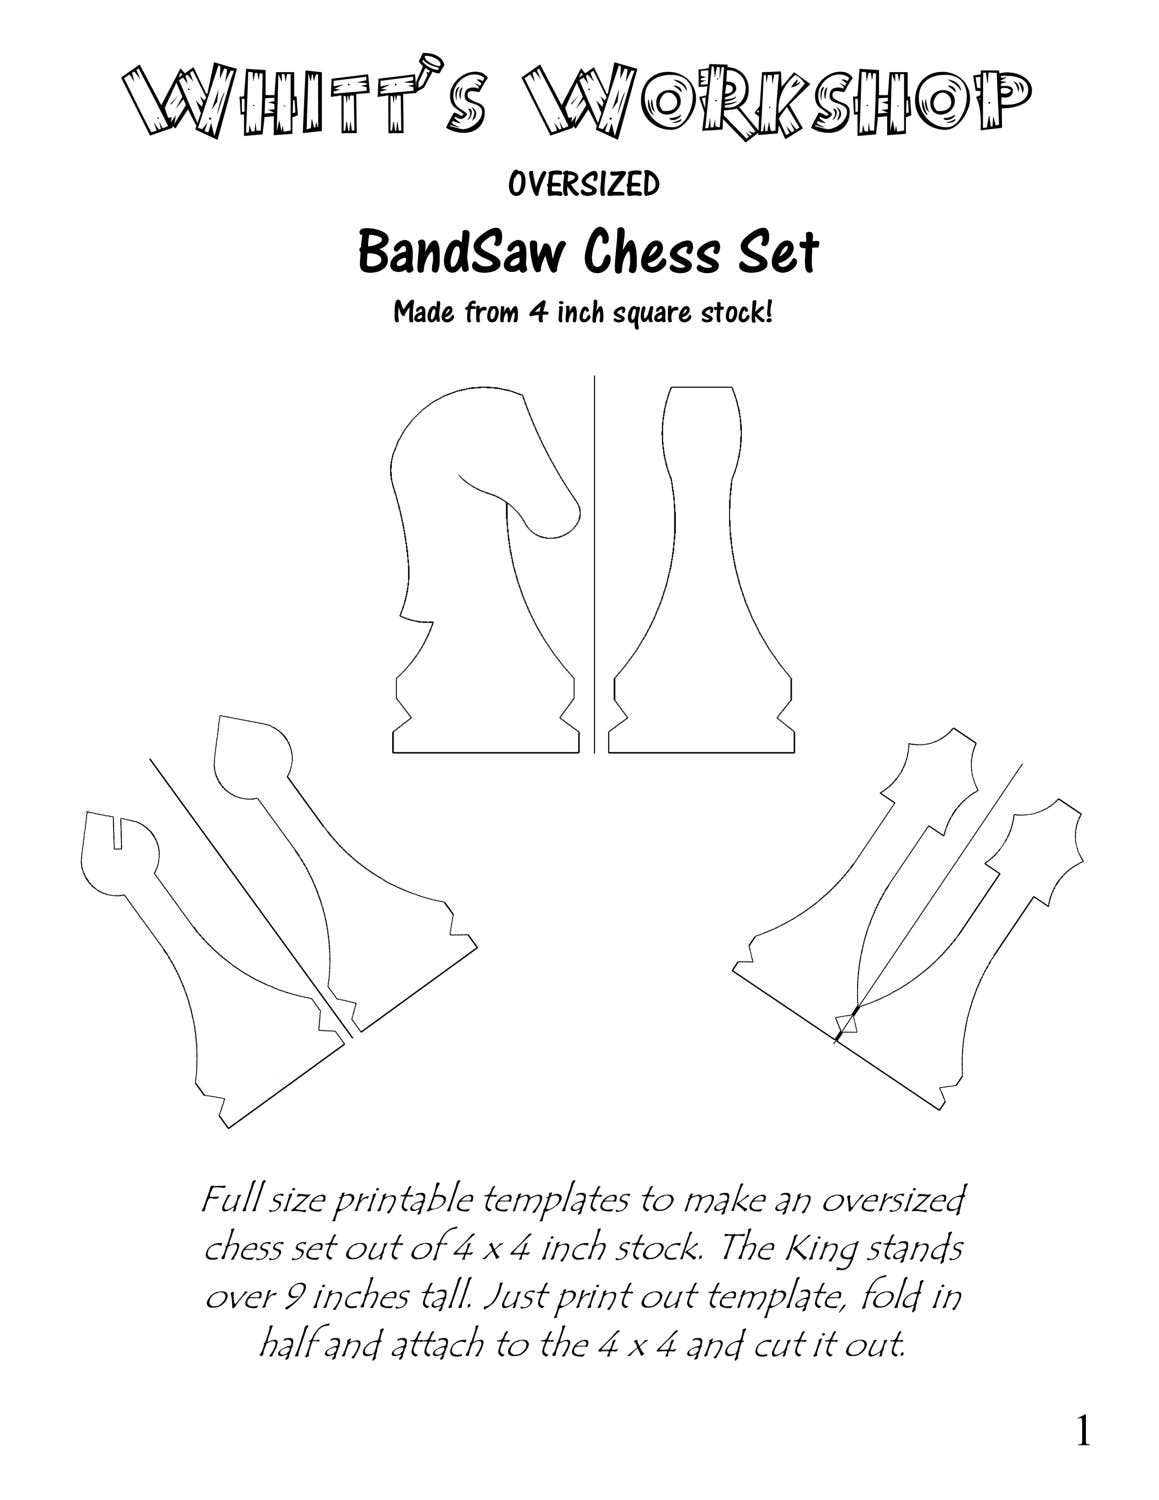 Over sized band saw chess set wood plans pdf file this is a digital file malvernweather